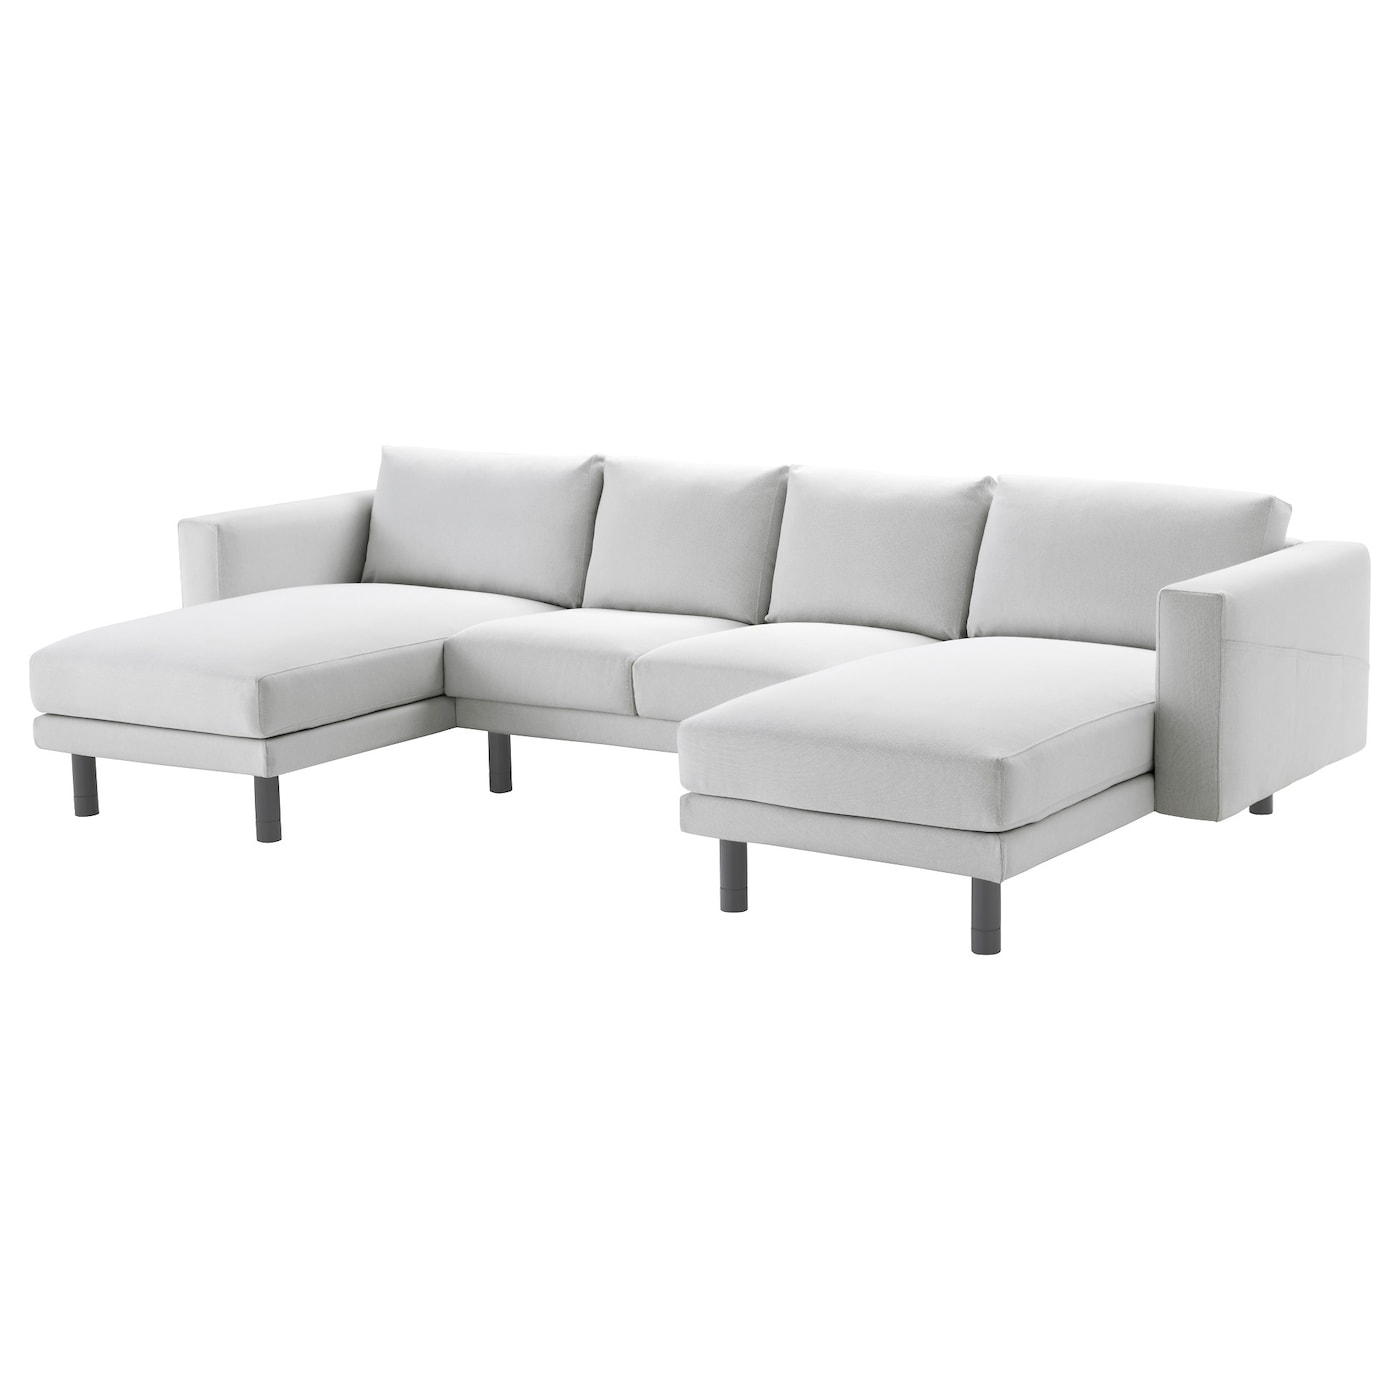 Norsborg 2 seat sofa with 2 chaise longues finnsta white for 2 5 seater chaise